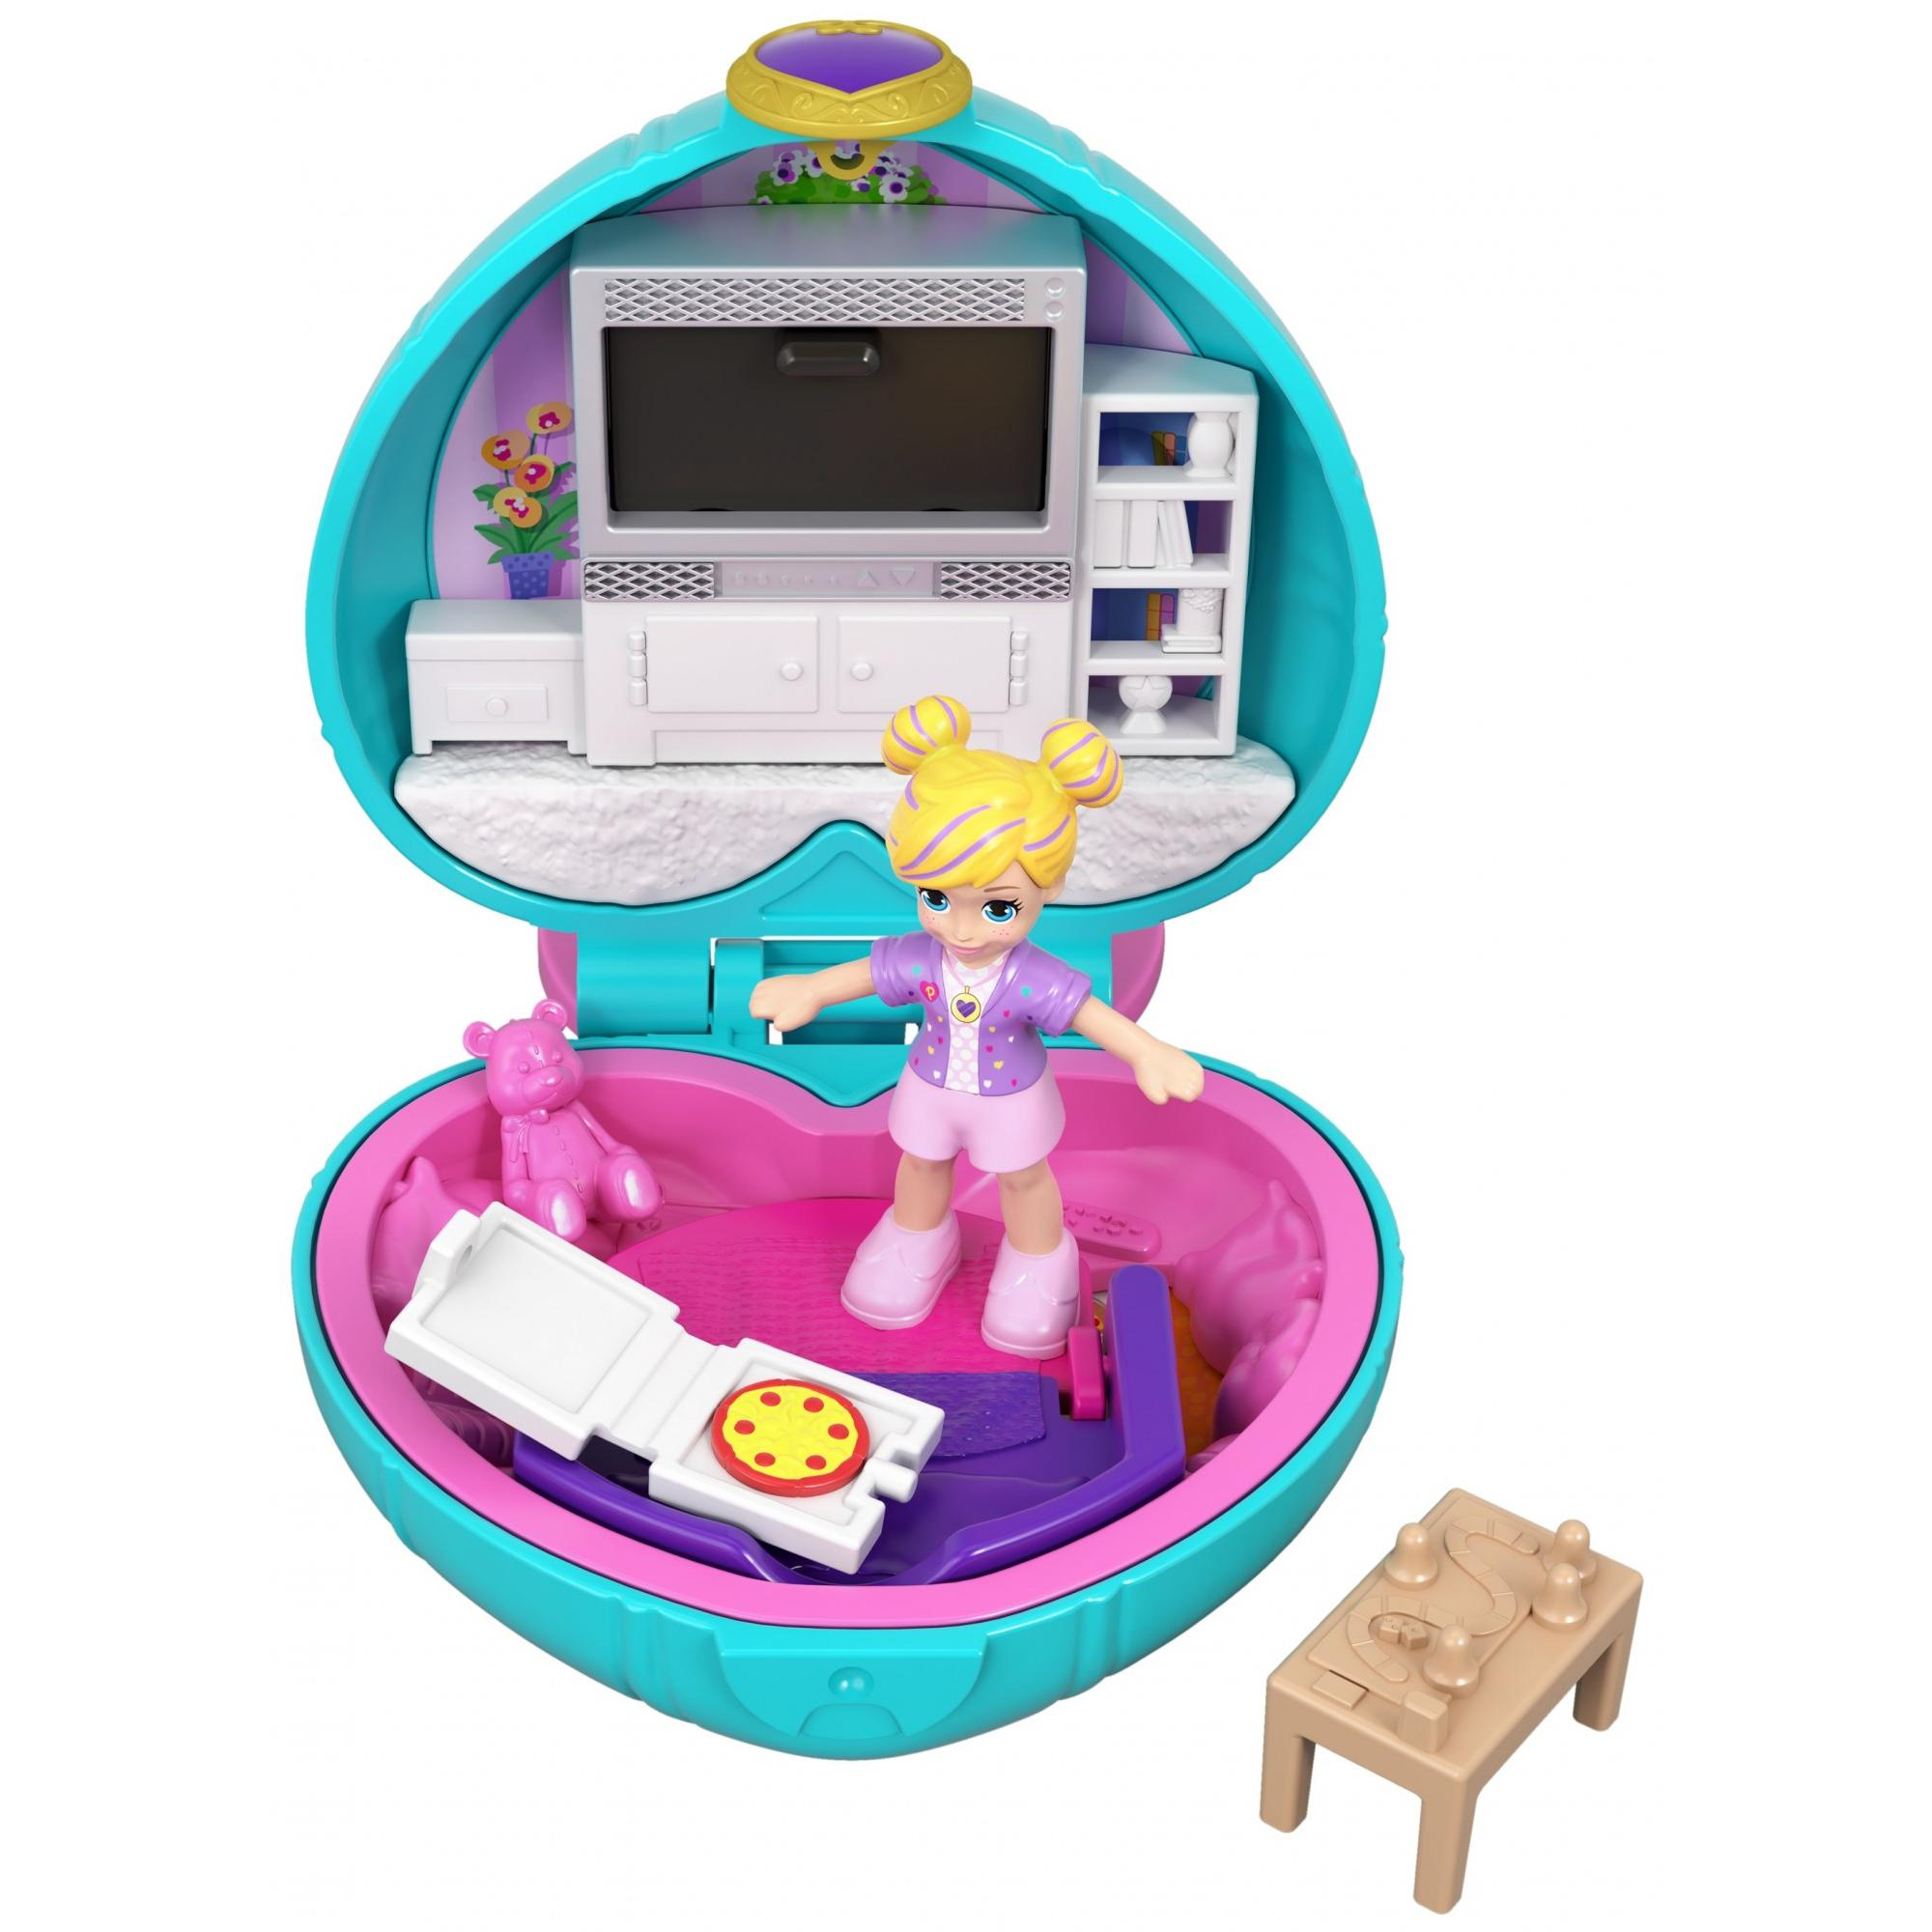 Polly Pocket Tiny Pocket Places Polly Sleepover Compact with Doll